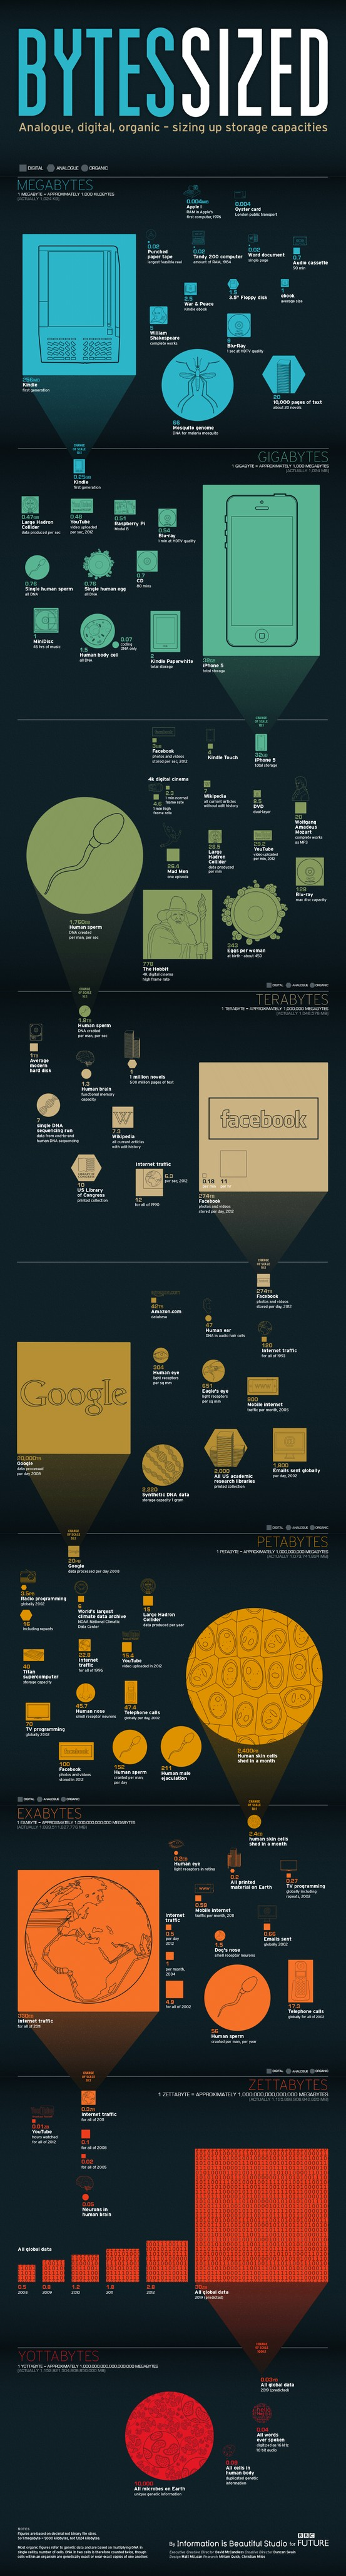 Byte-sized graphic guide to data storage http://www.bbc.com/future/story/20130621-byte-sized-guide-to-data-storage …